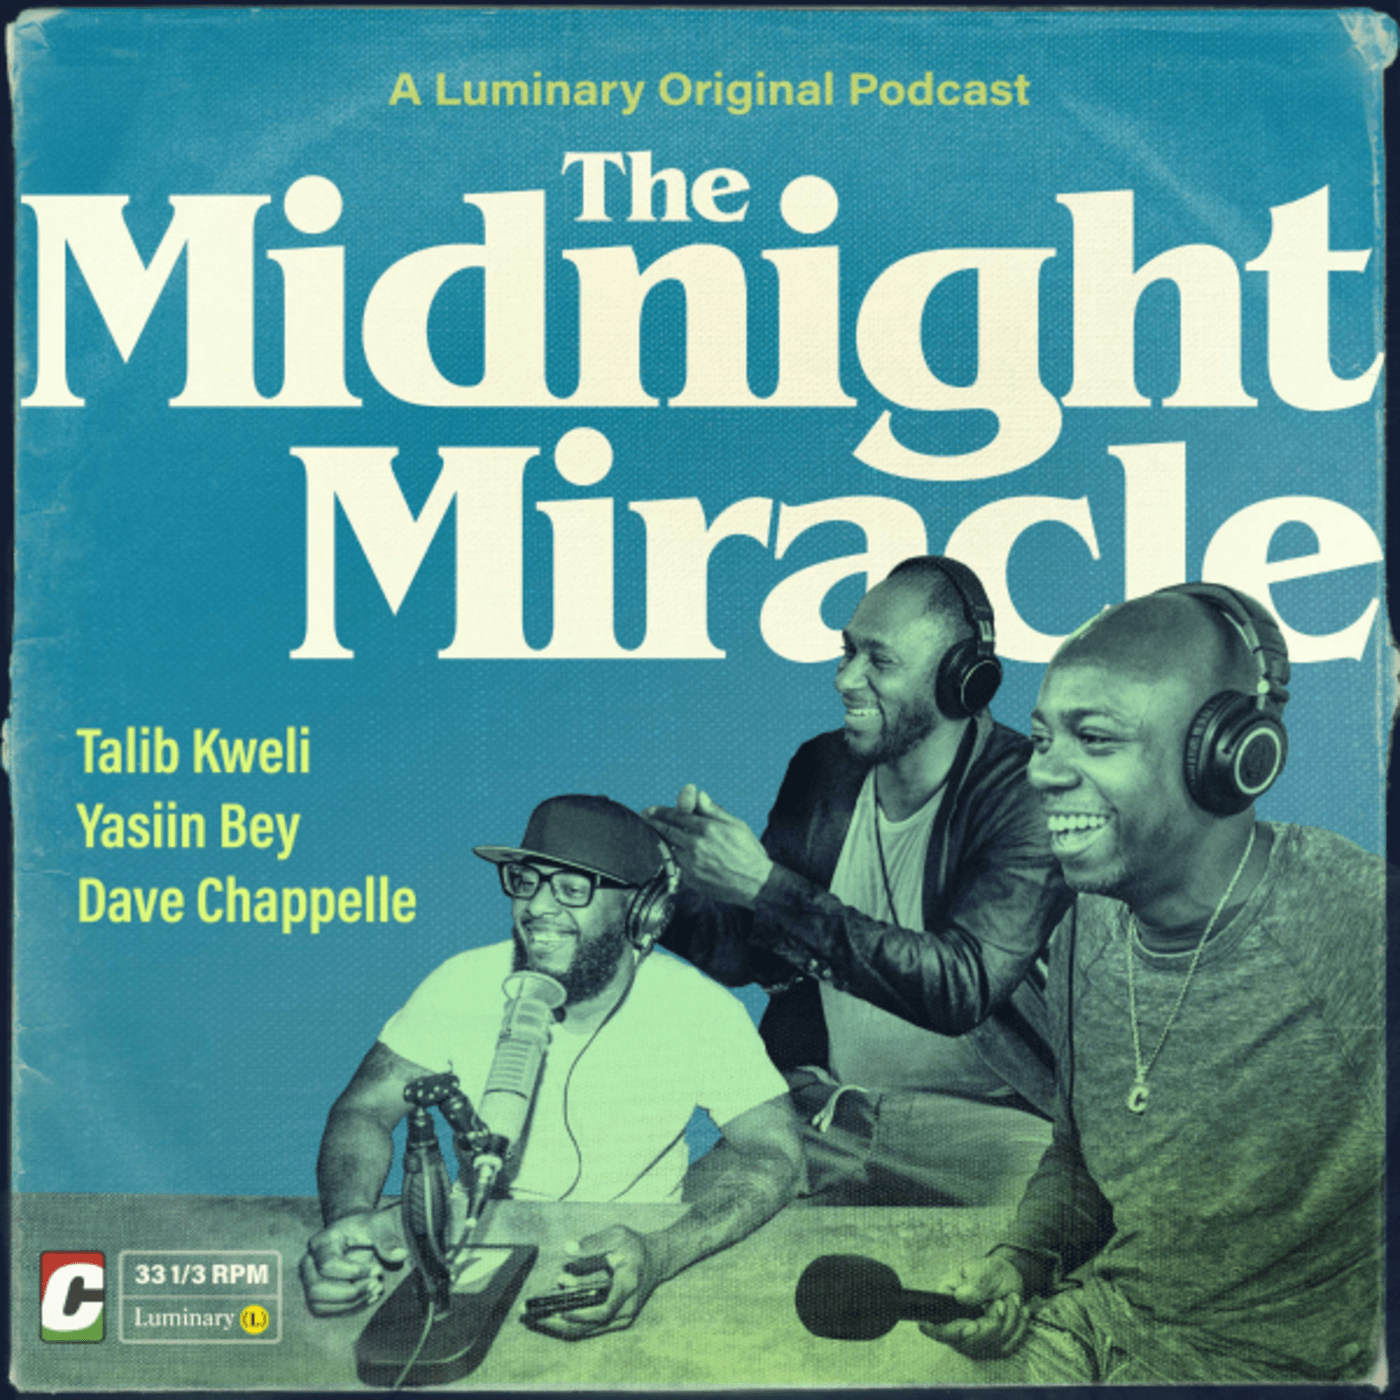 'The Midnight Miracle' Podcast